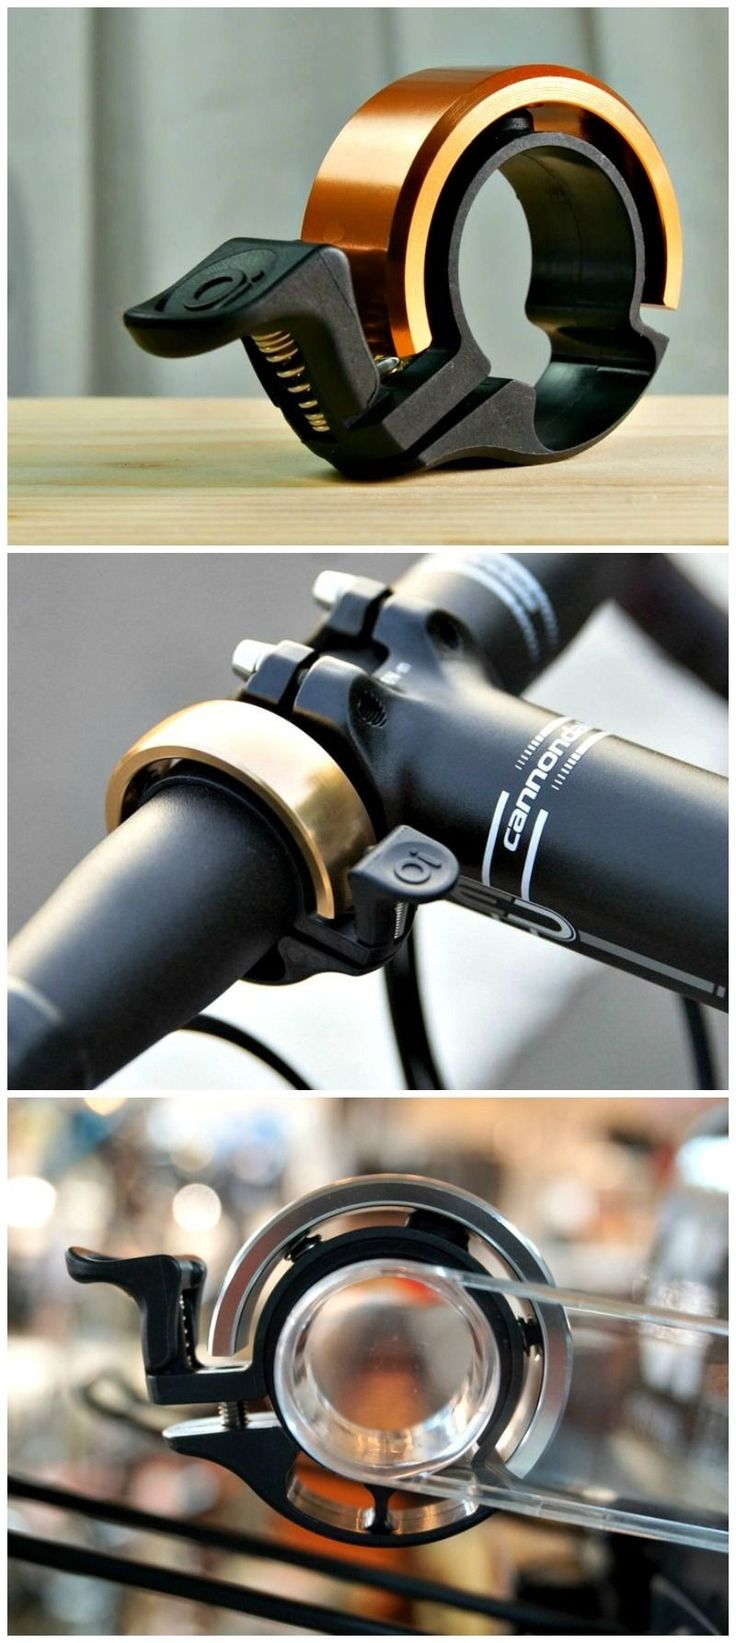 Love these low profile bike bells! Many brands on Amazon selling cheap and well-reviewed in an array of color options.